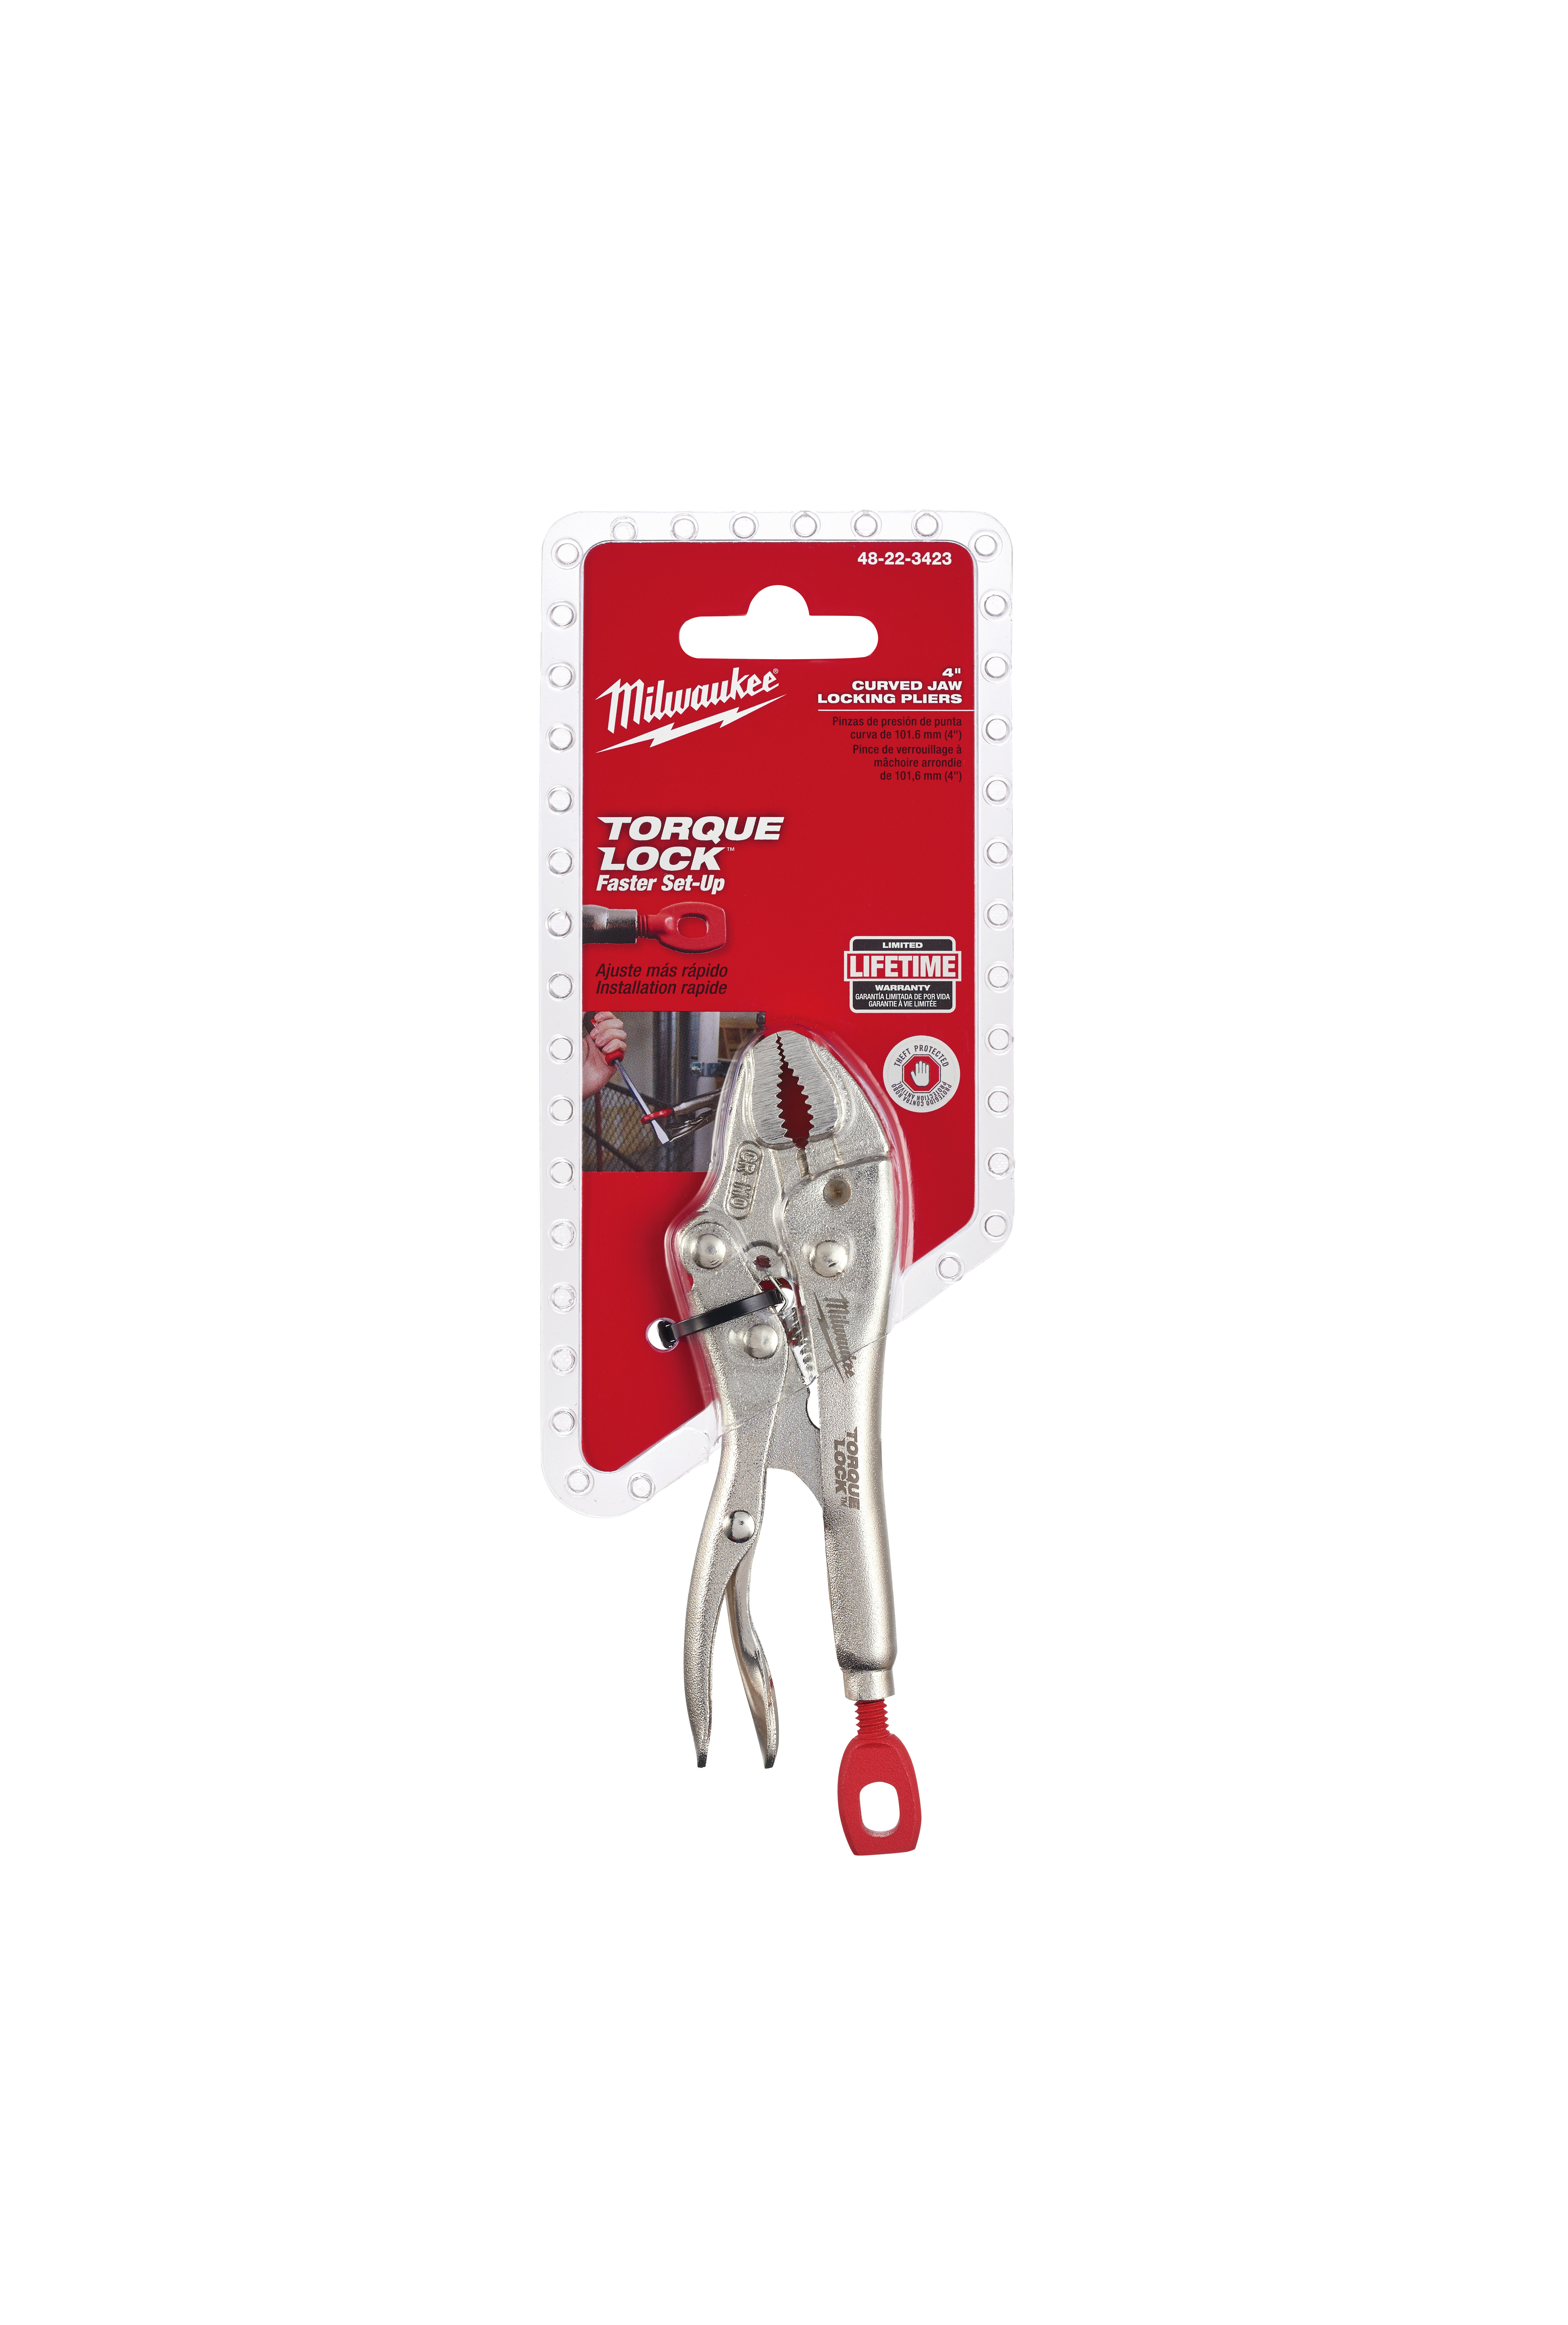 Milwaukee® TORQUE LOCK™ 48-22-3423 Standard Locking Plier, 1 in Nominal, 29/32 in L x 3/8 in W Forged Alloy Steel Curved Jaw, 4 in OAL